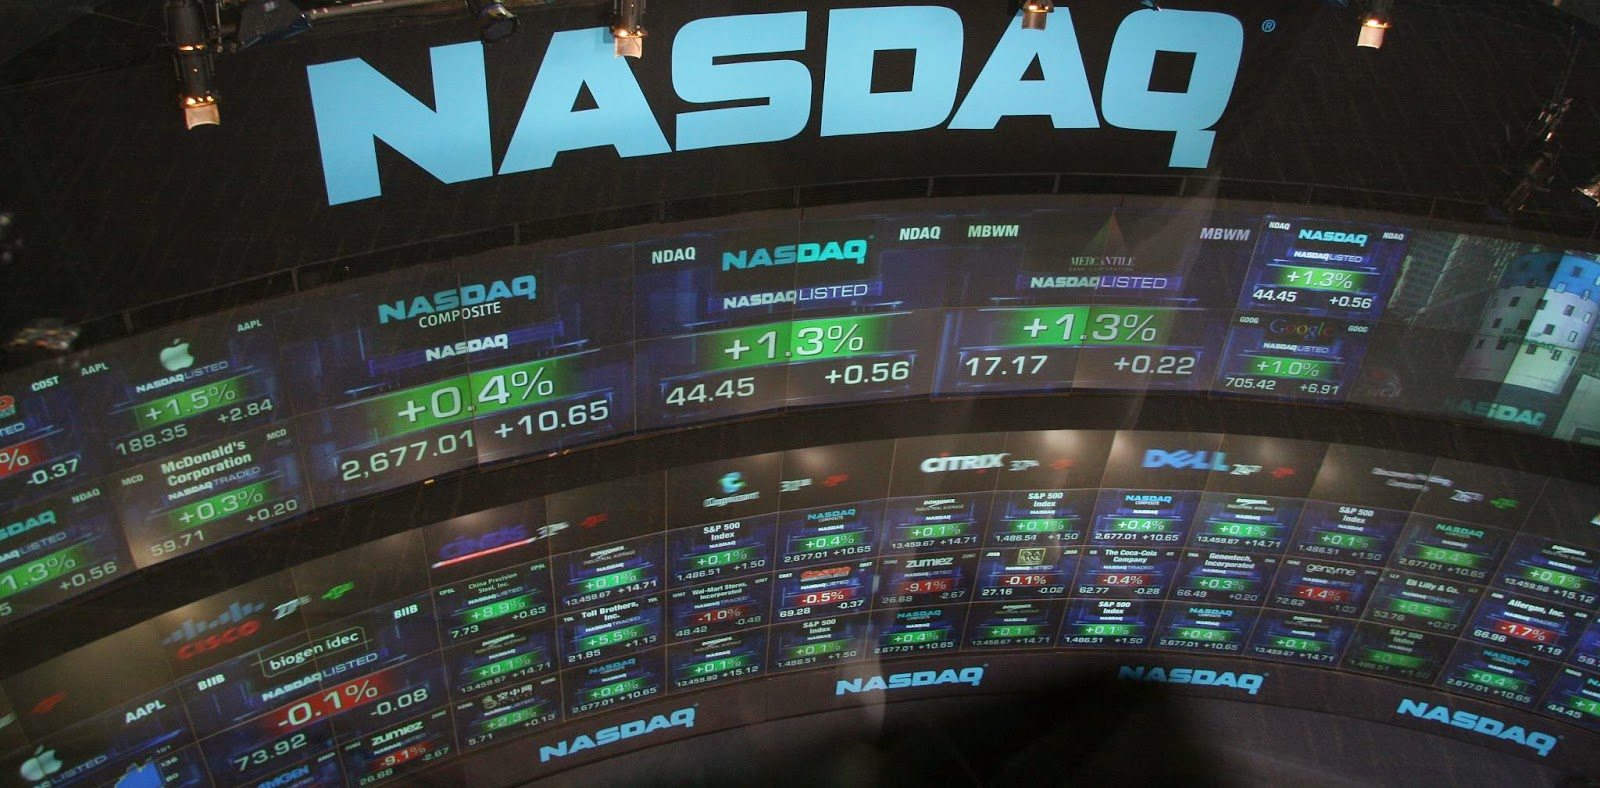 todays stock market news and analysis nasdaqcom nasdaq